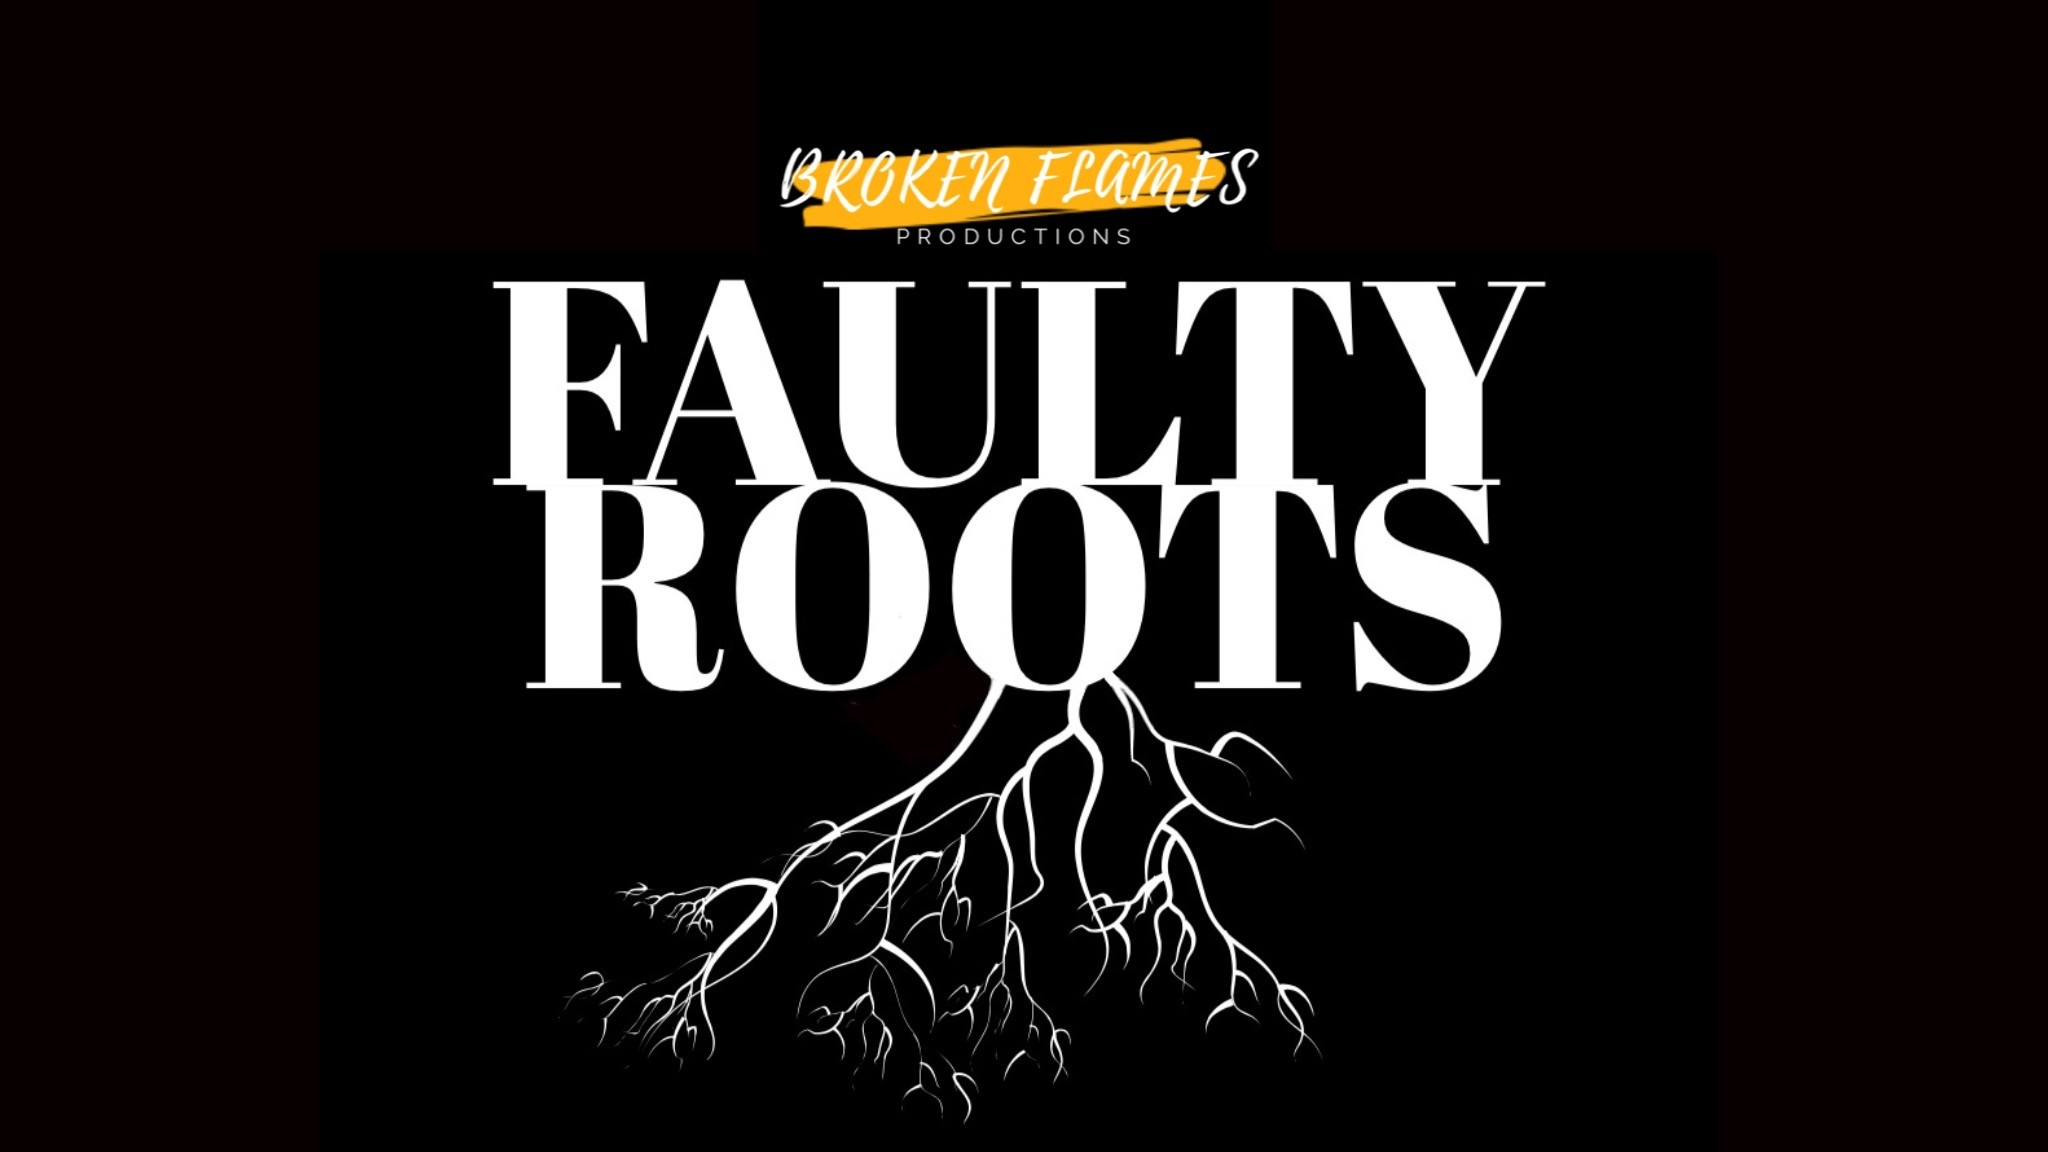 Faulty Roots poster